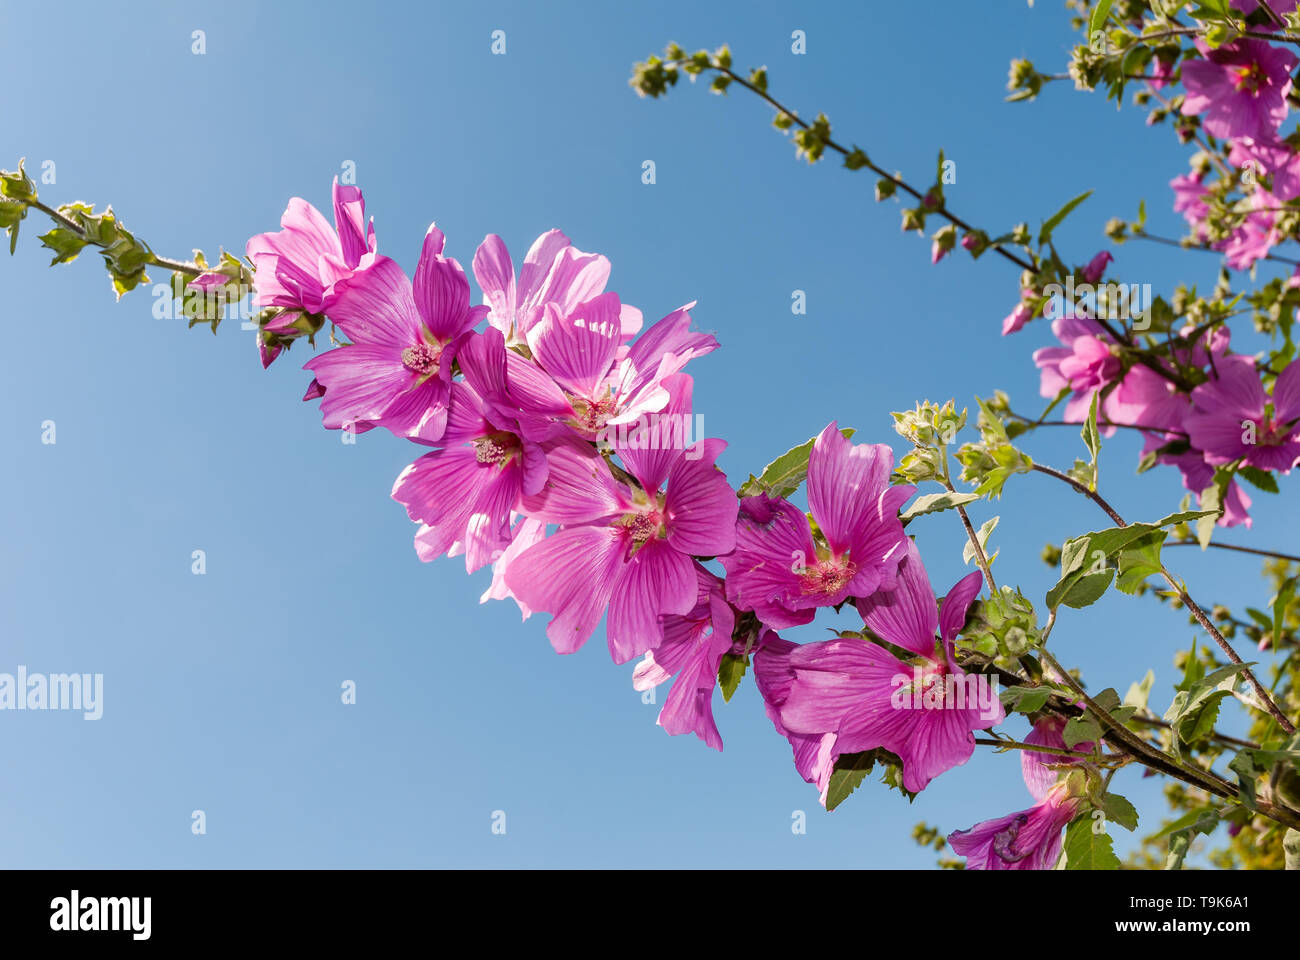 Lavatera Olbia Rosea or Tree Mallow growing in a private UK garden. - Stock Image